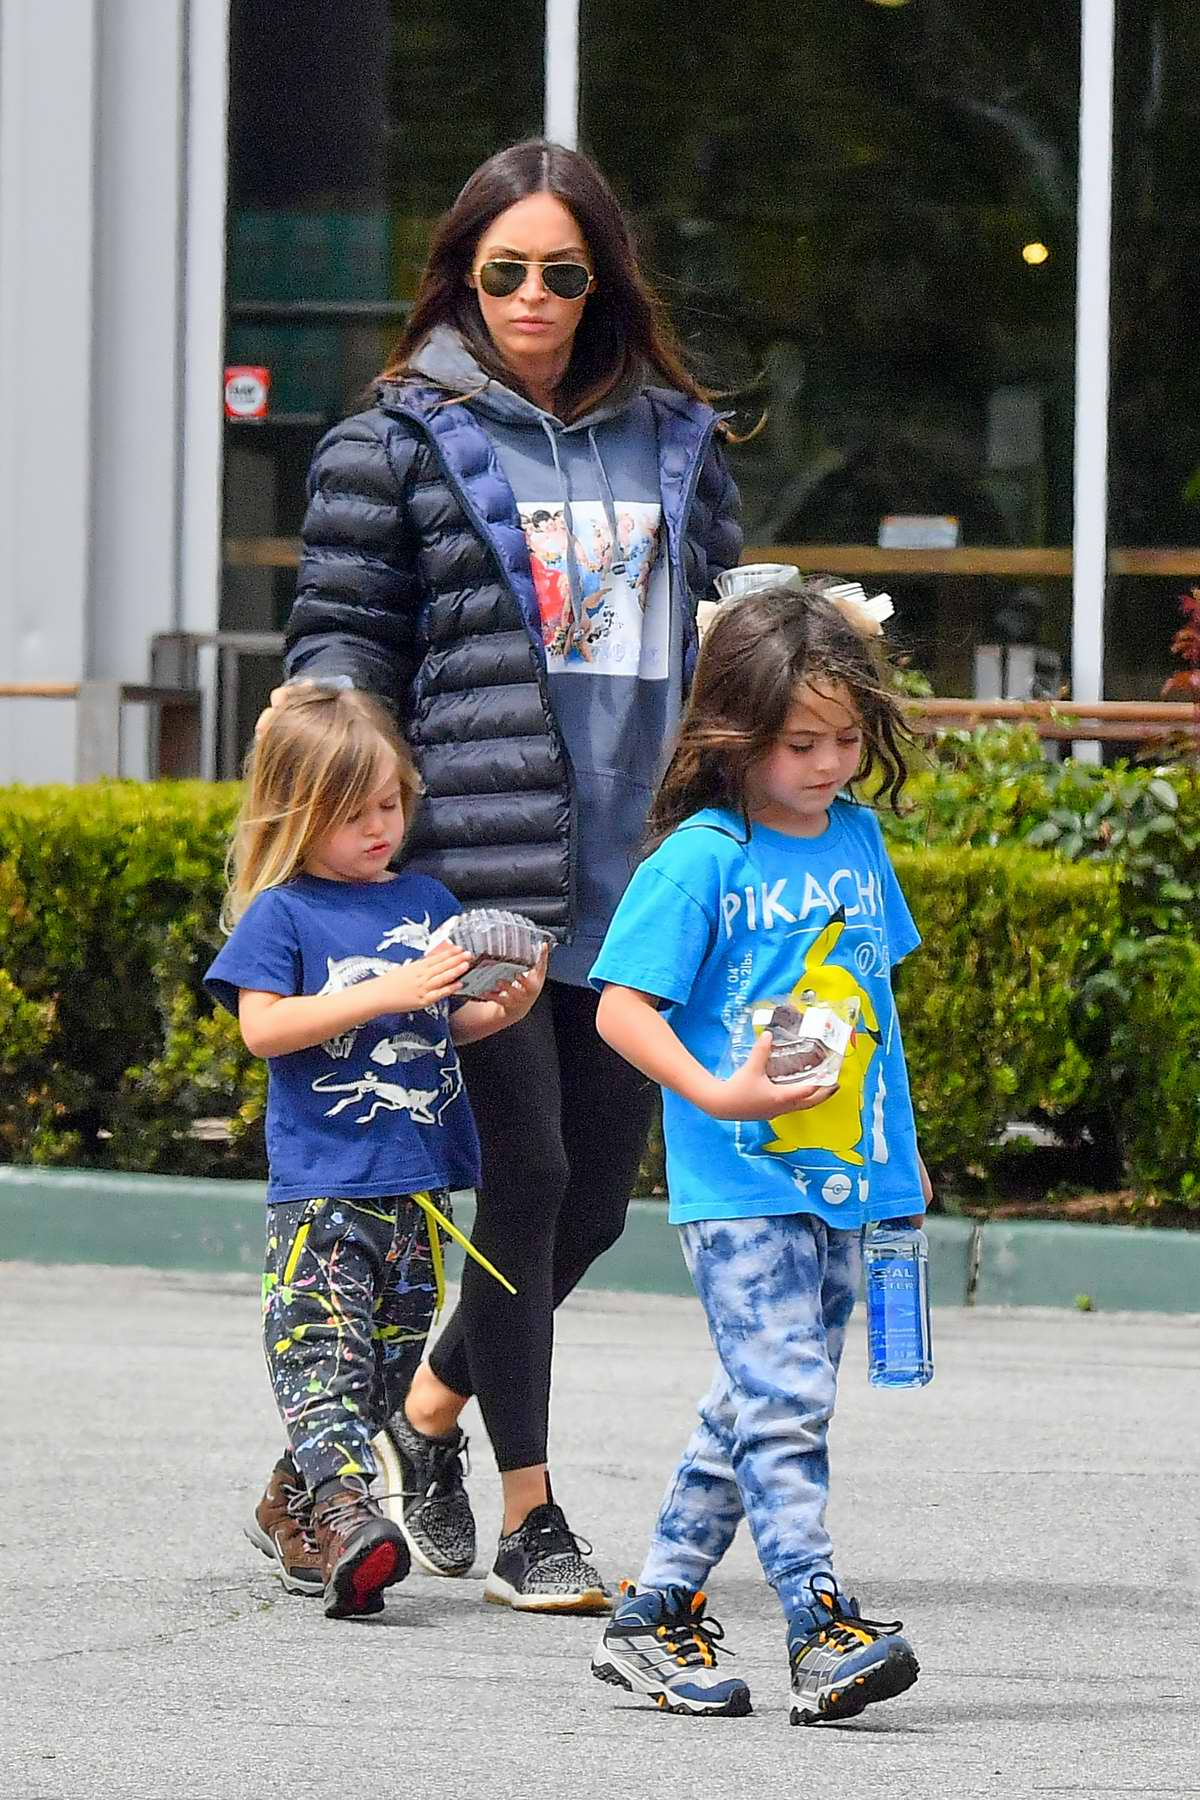 Megan Fox and Brian Austin Green take their kids to a grocery store for lunch and snacks in Los Angeles